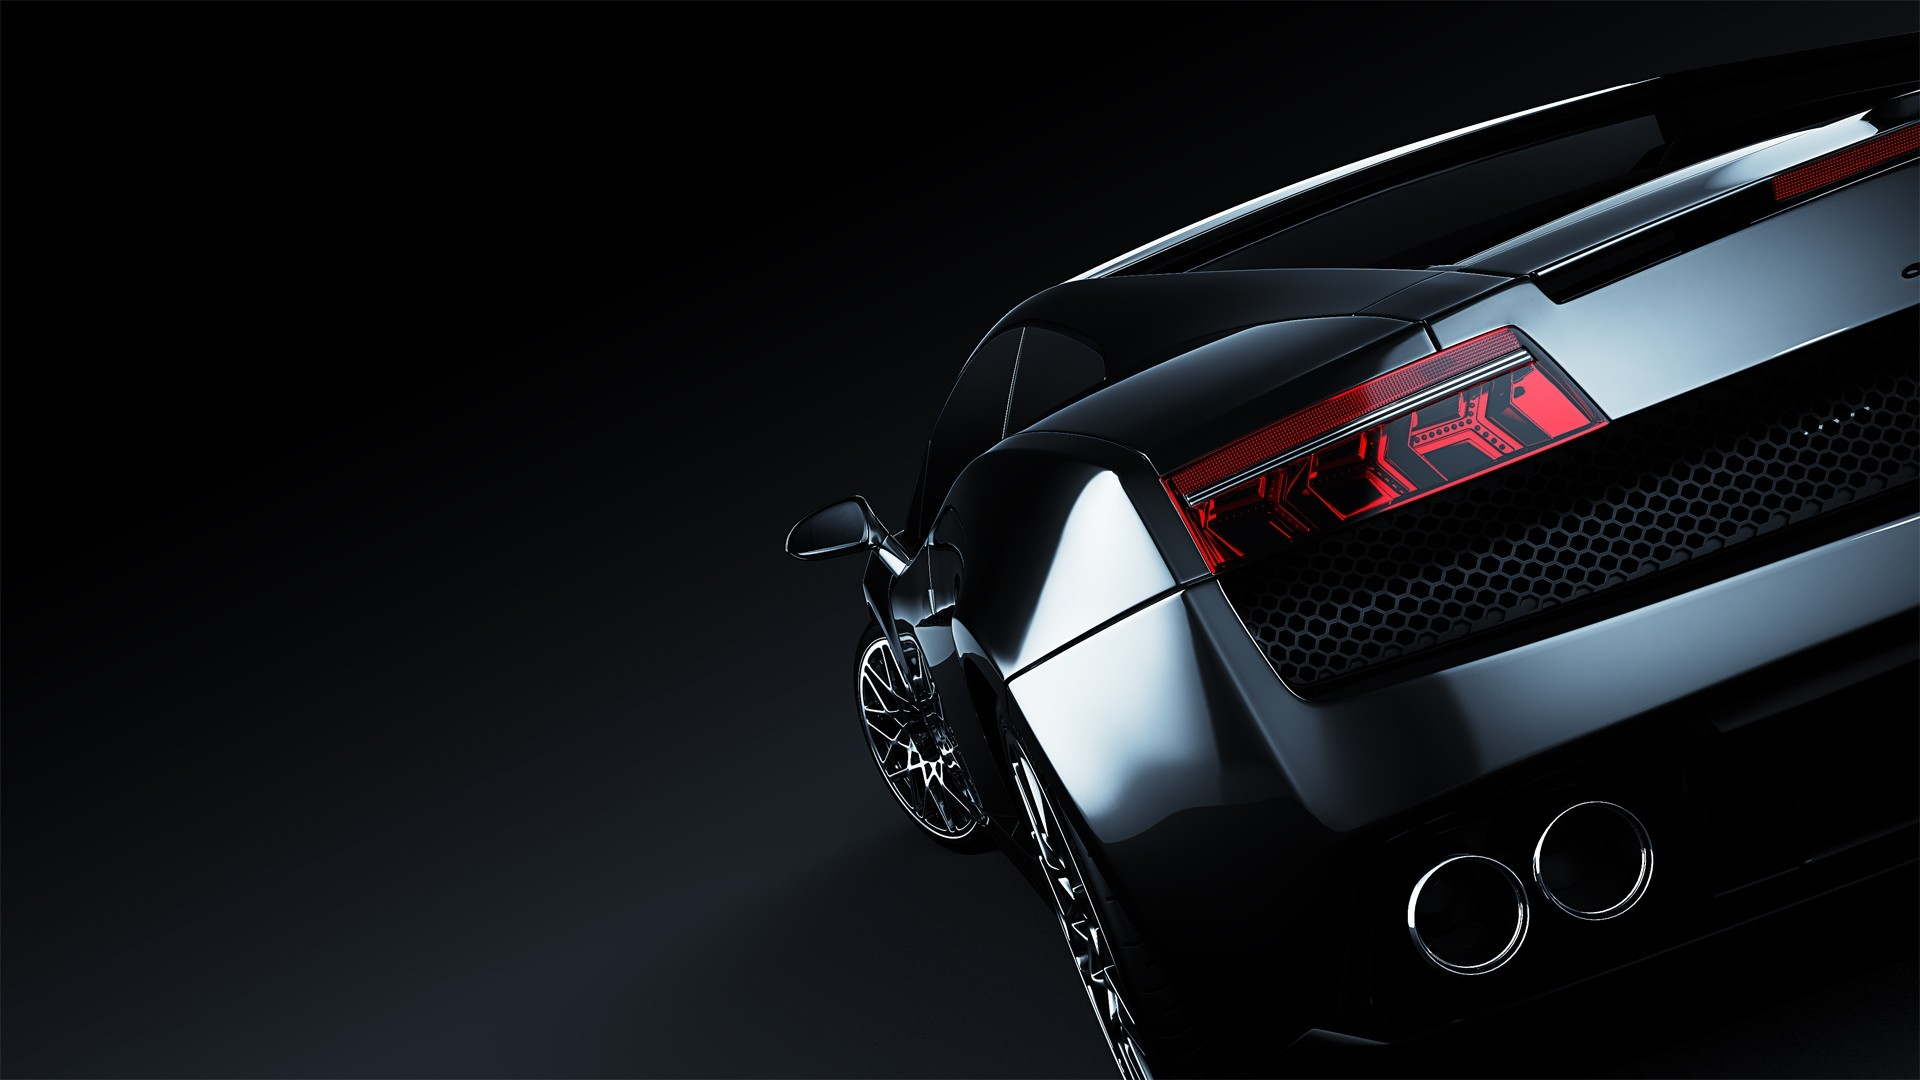 Res: 1920x1080, Lamborghini HD Wallpaper 1080P Hd Wallpaper